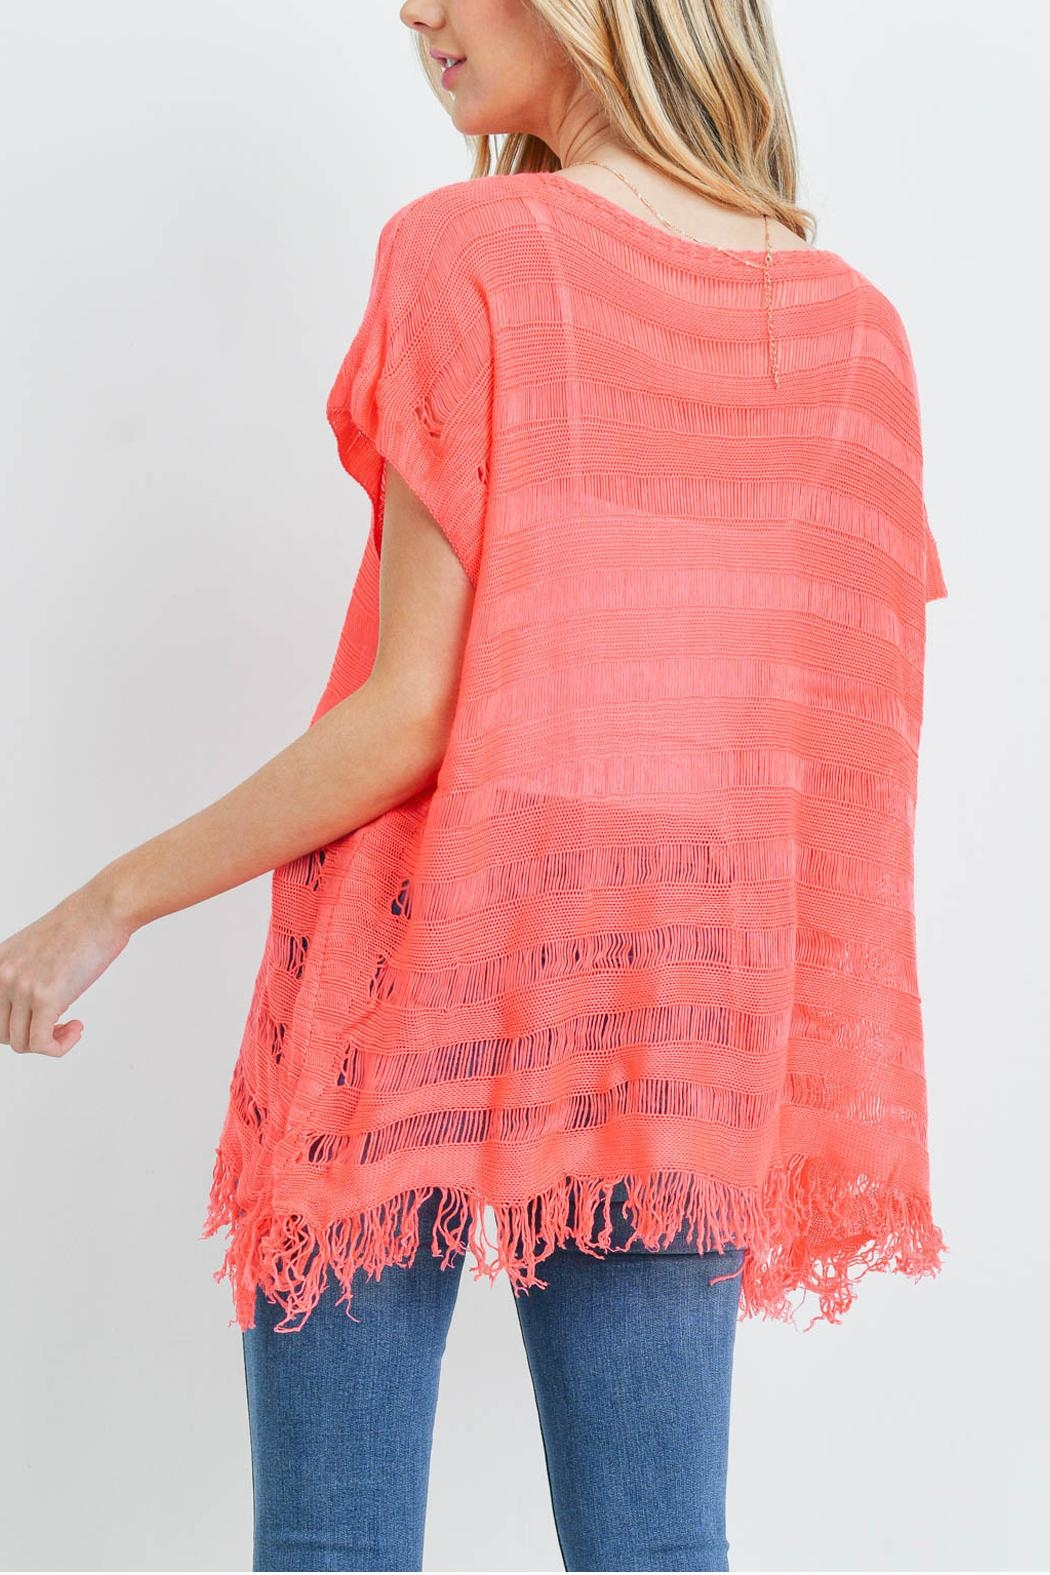 Riah Fashion Short-Sleeves-See-Through-Knitted Tassel Top - Front Full Image